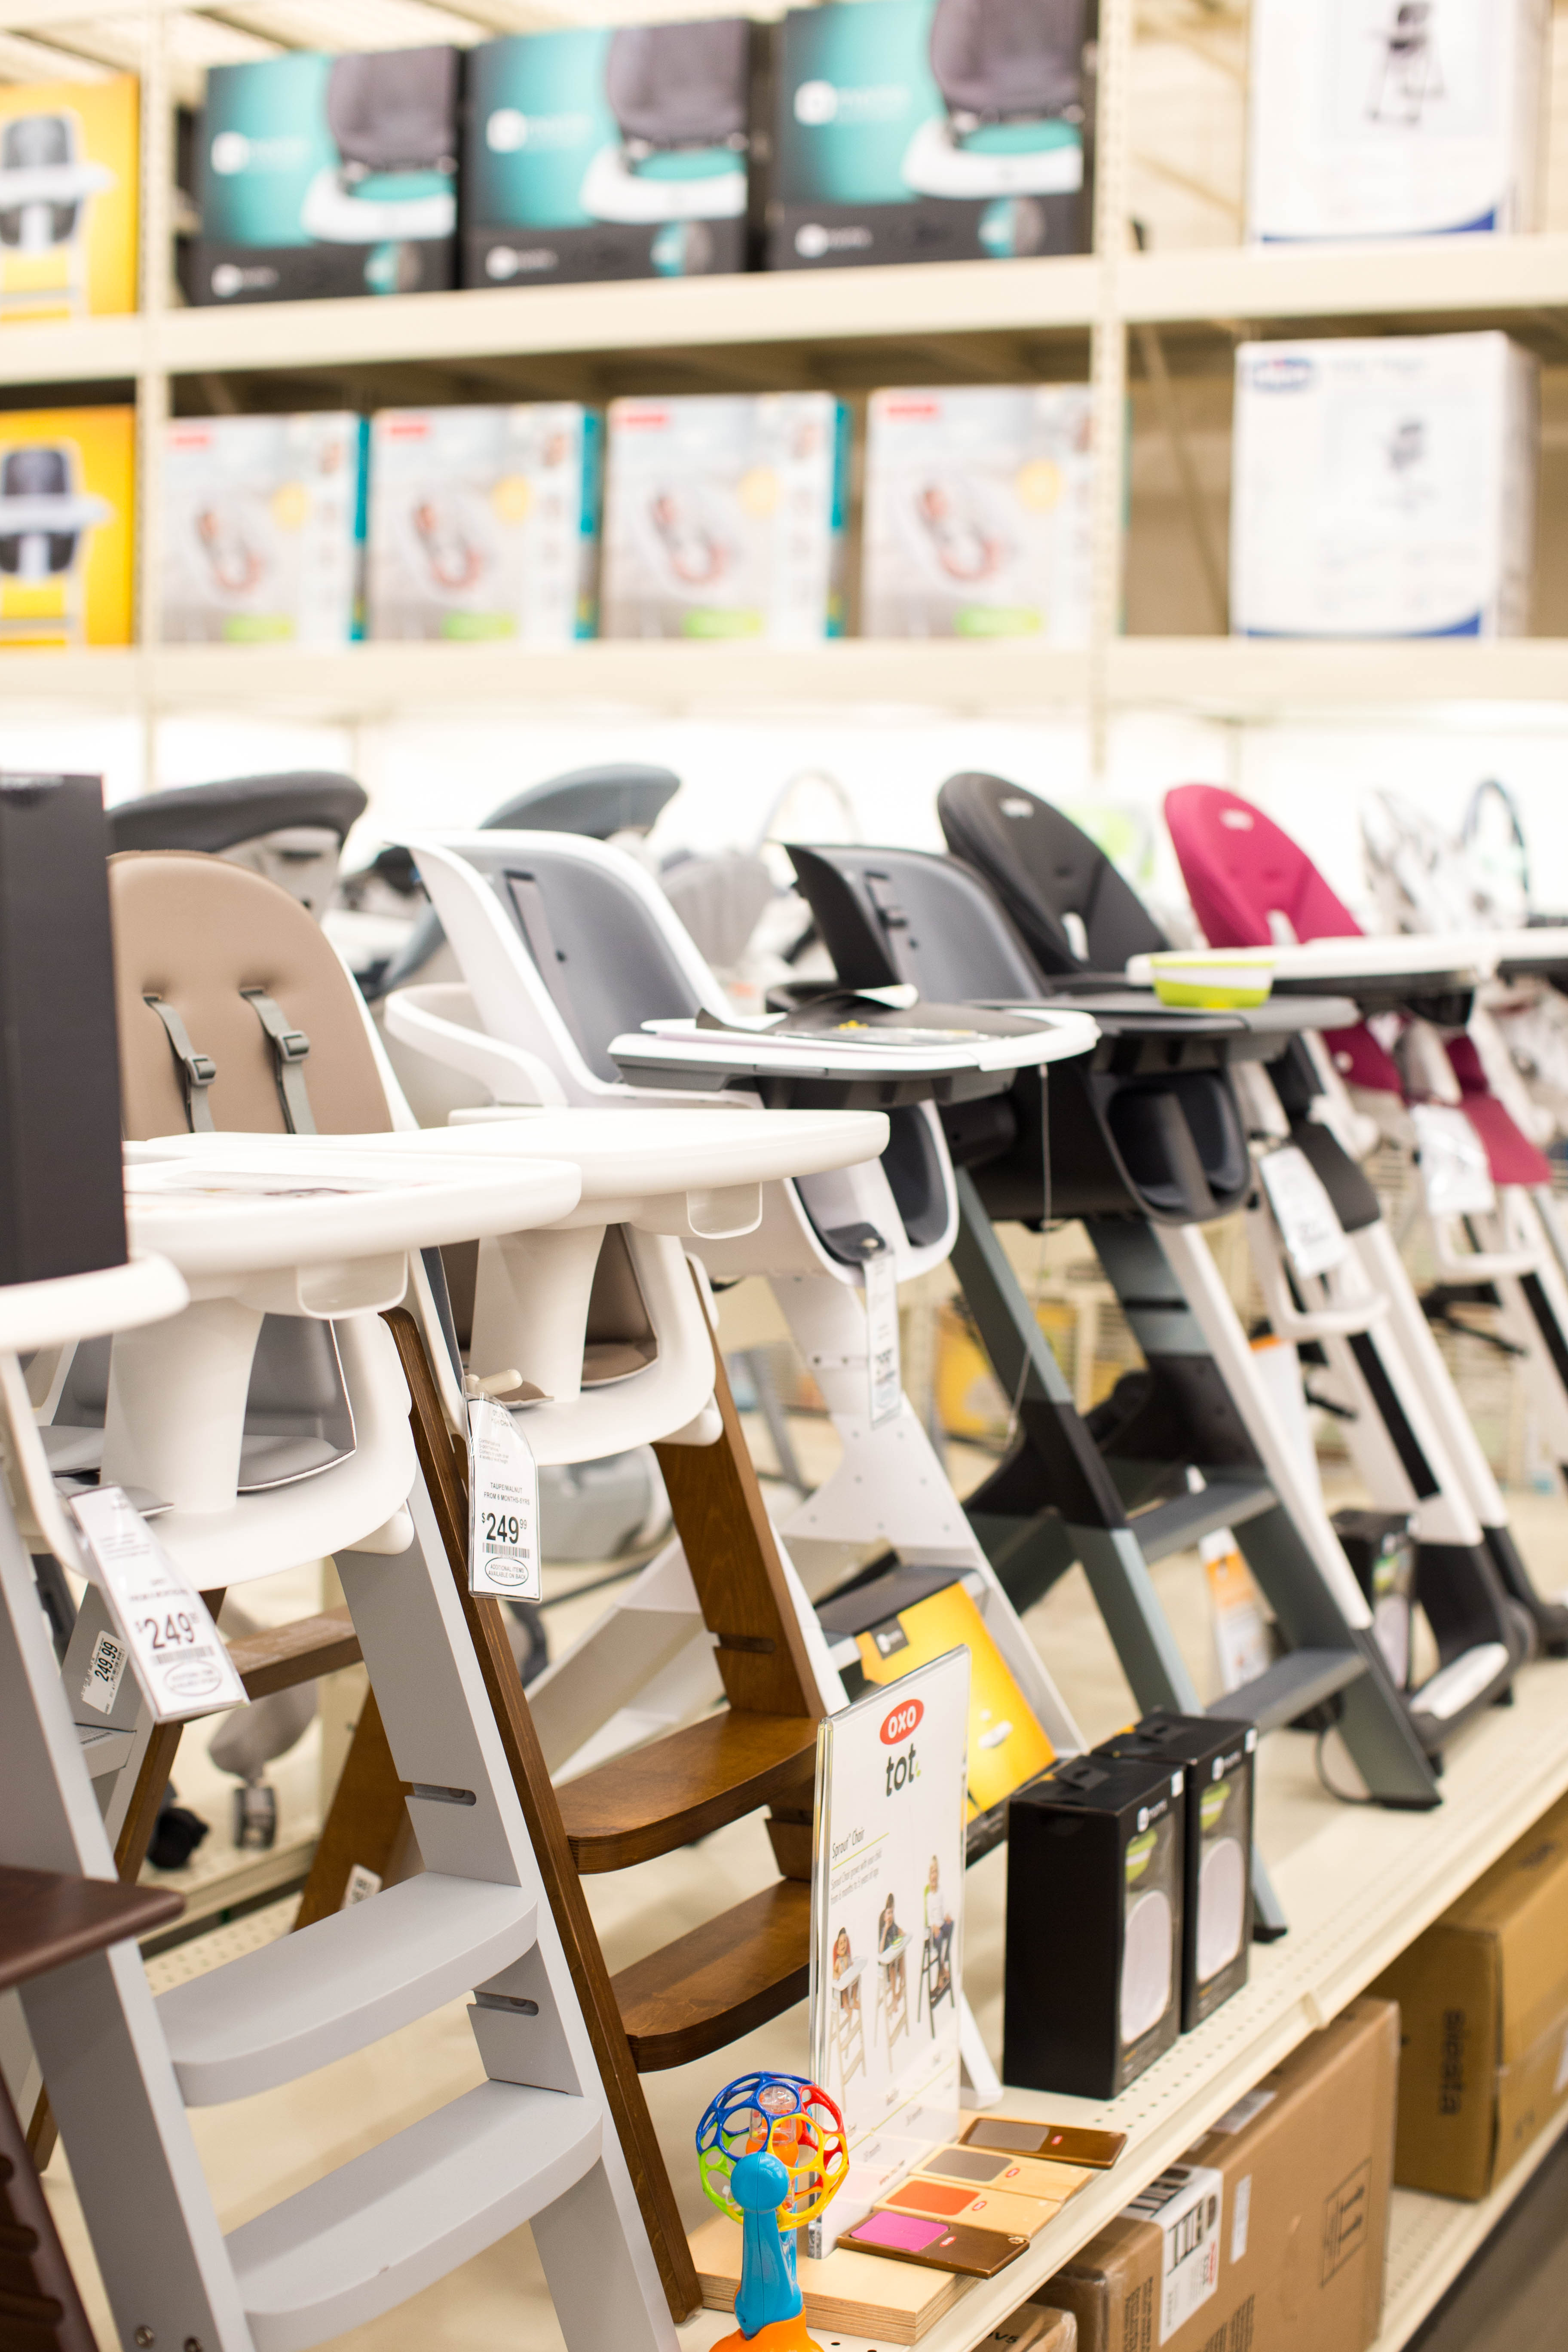 What to Expect When Registering for Baby